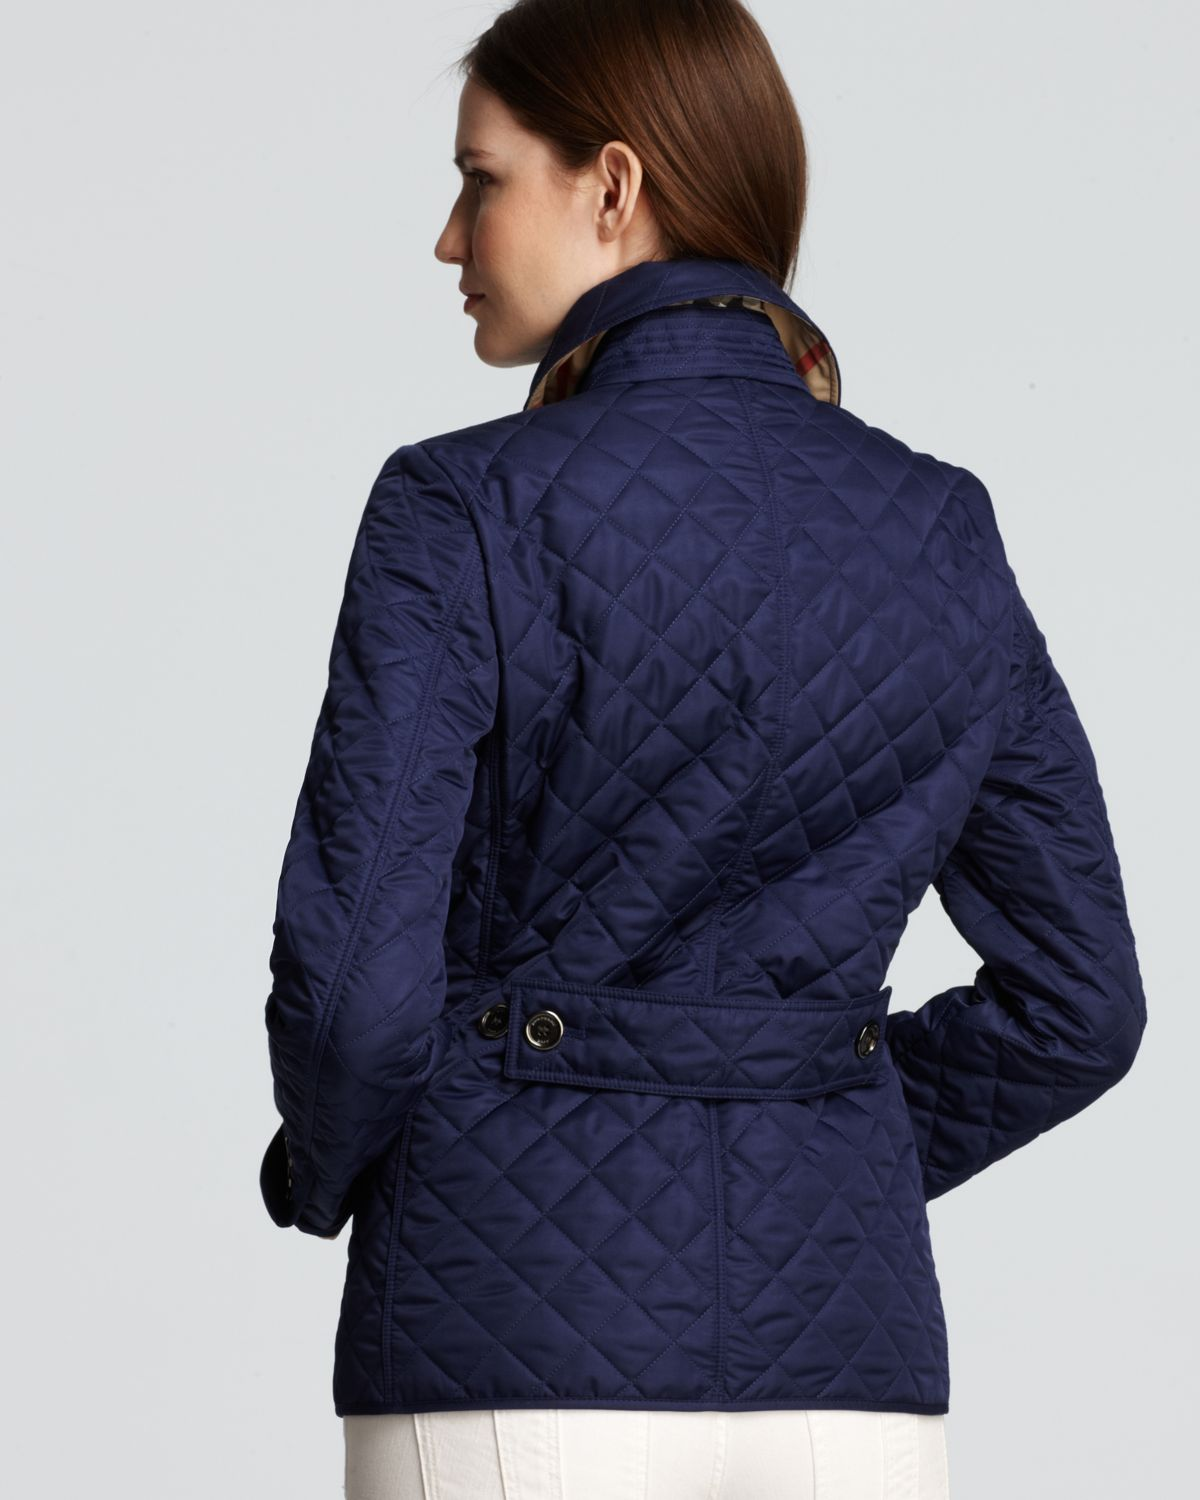 Burberry Brit Copford Quilted Jacket in Blue | Lyst : burberry quilted jacket with hood - Adamdwight.com